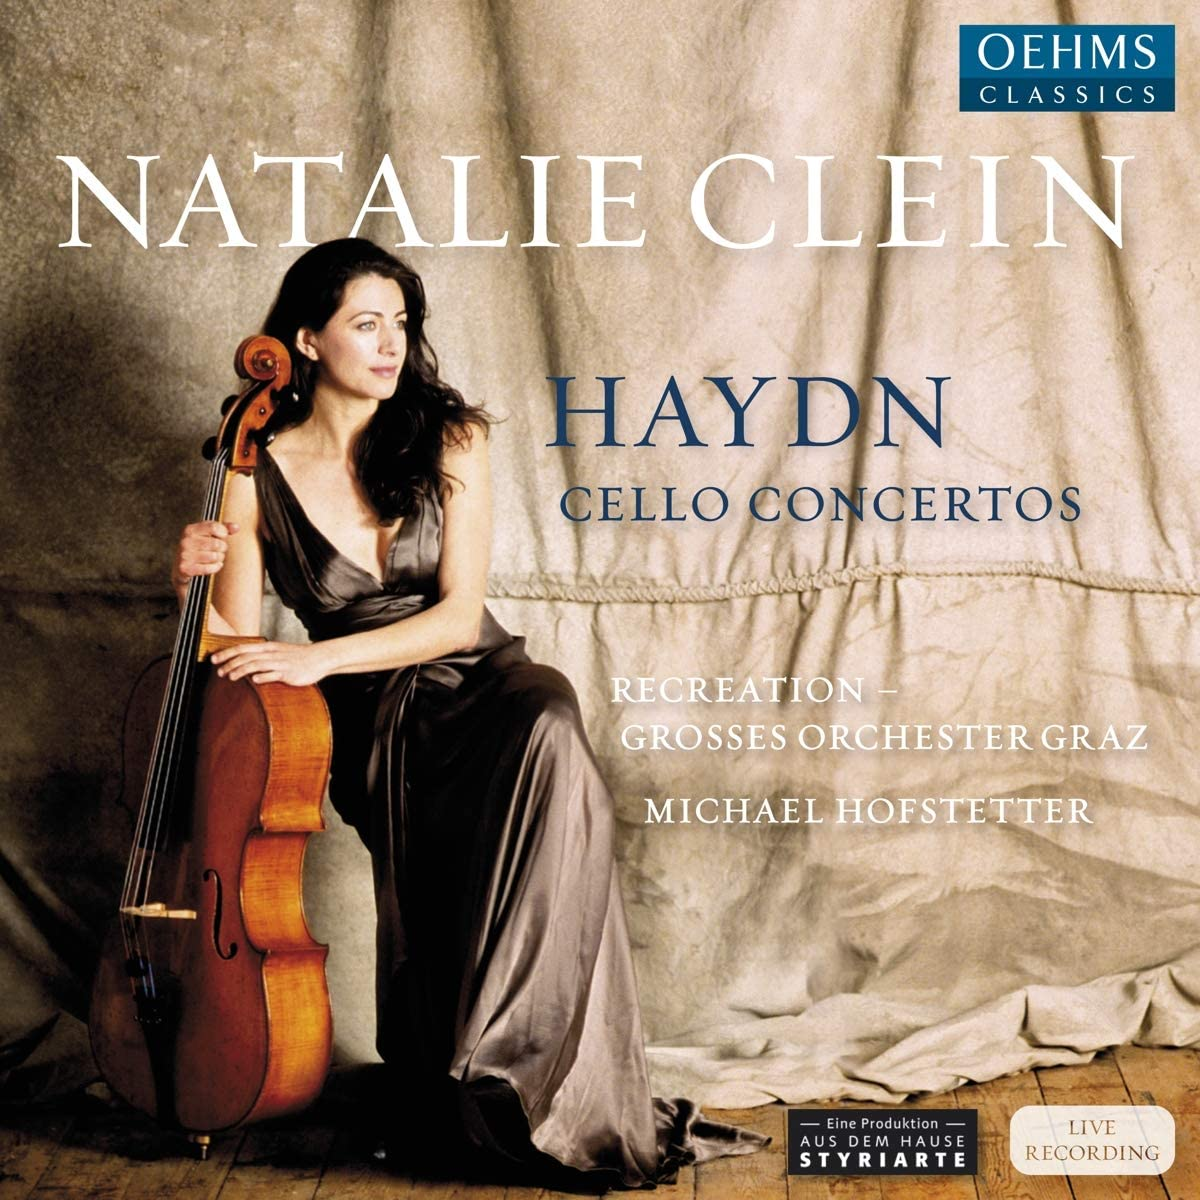 Review of HAYDN Cello Concertos (Natalie Clein)